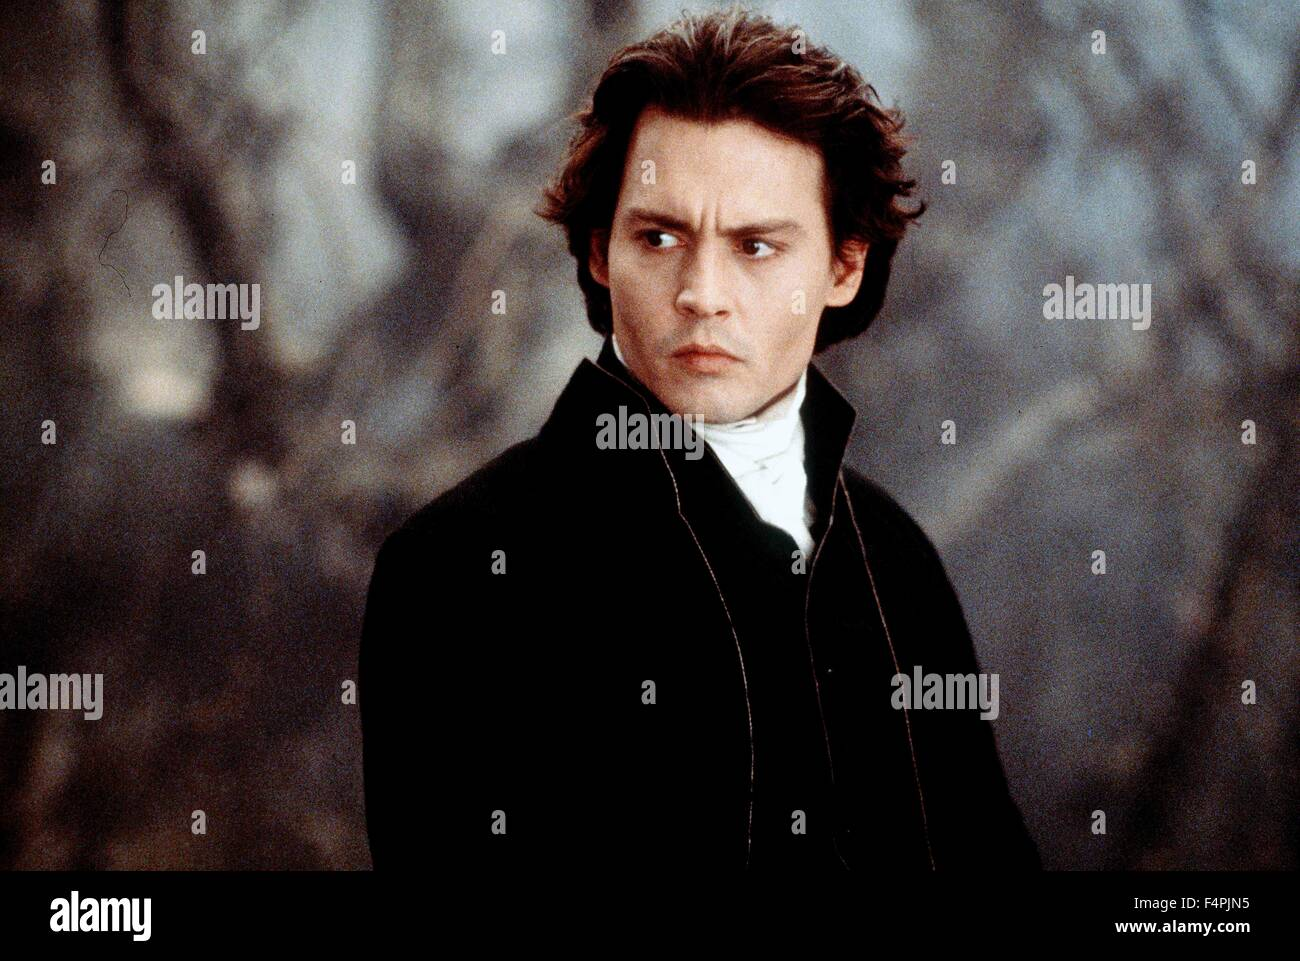 Johnny Depp / Sleepy Hollow / 1999 directed by Tim Burton [Paramount Pictures] - Stock Image